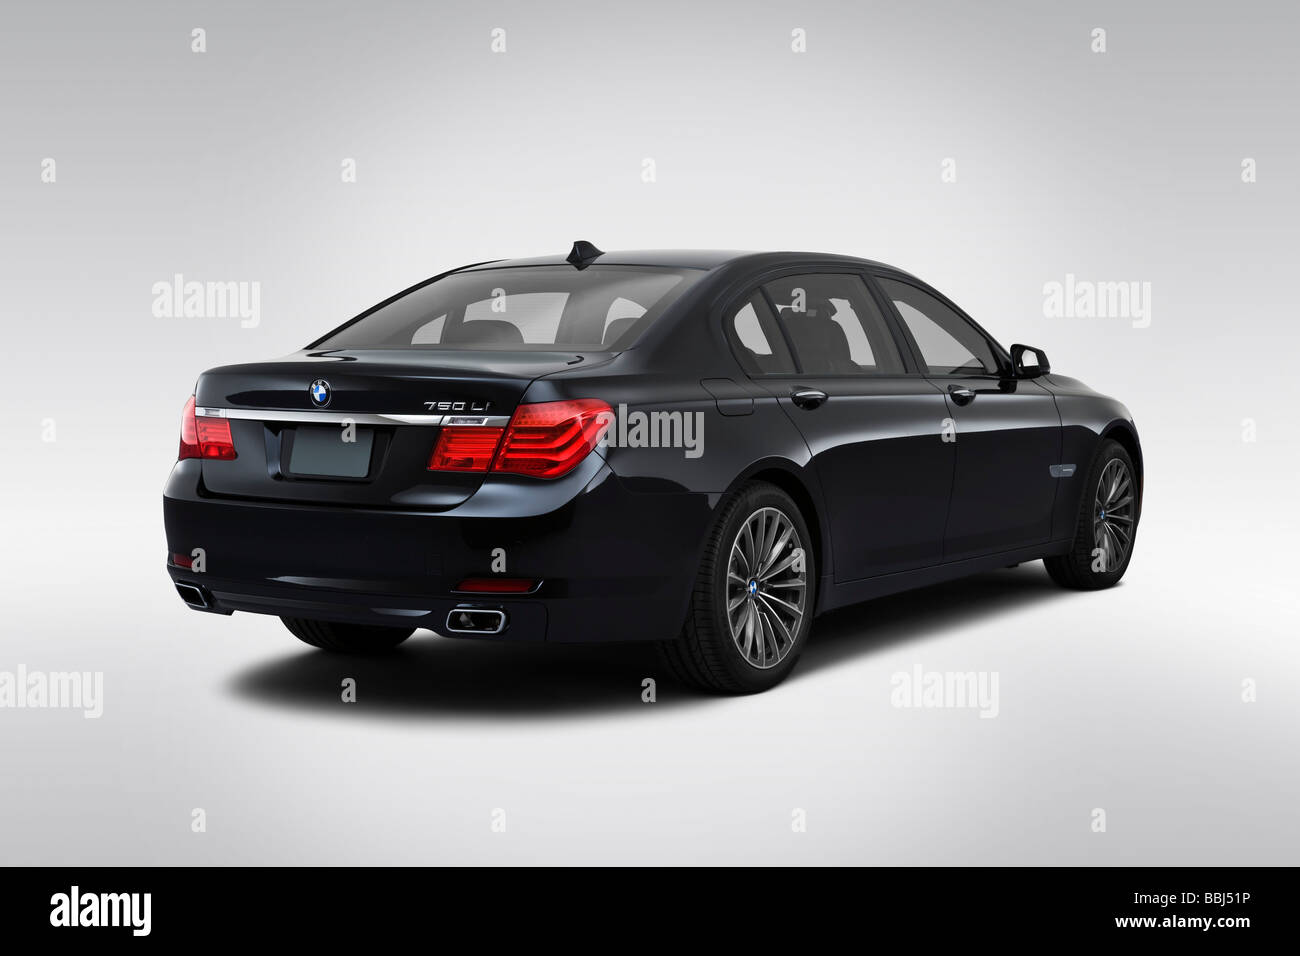 Bmw 7 Series Black Stock Photos Images White 2006 750li 2009 In Rear Angle View Image